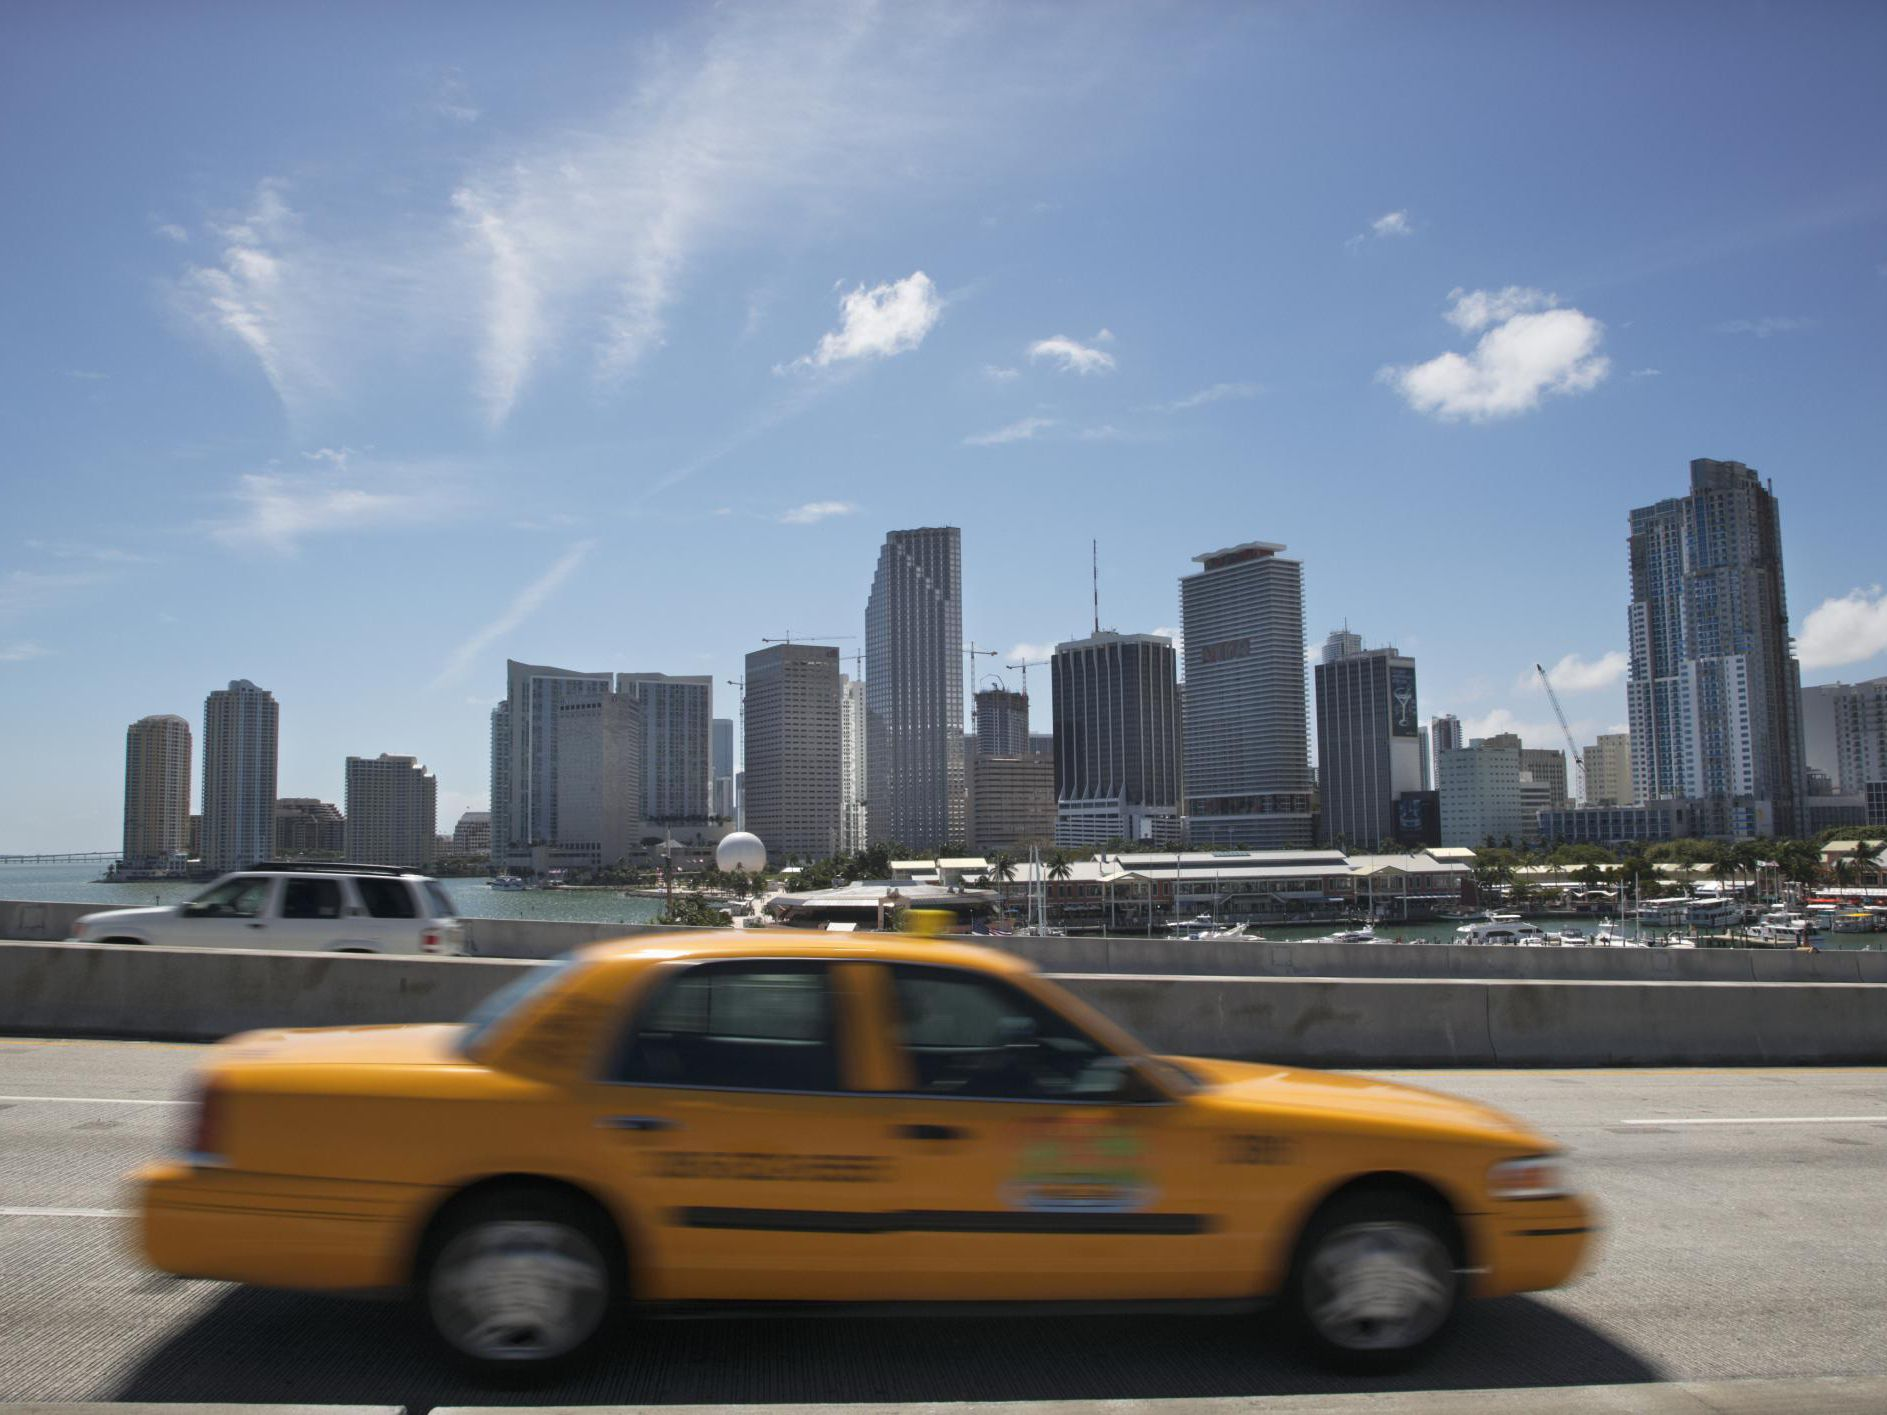 Miami Airport Transportation: Taxis, Shuttles, Trains